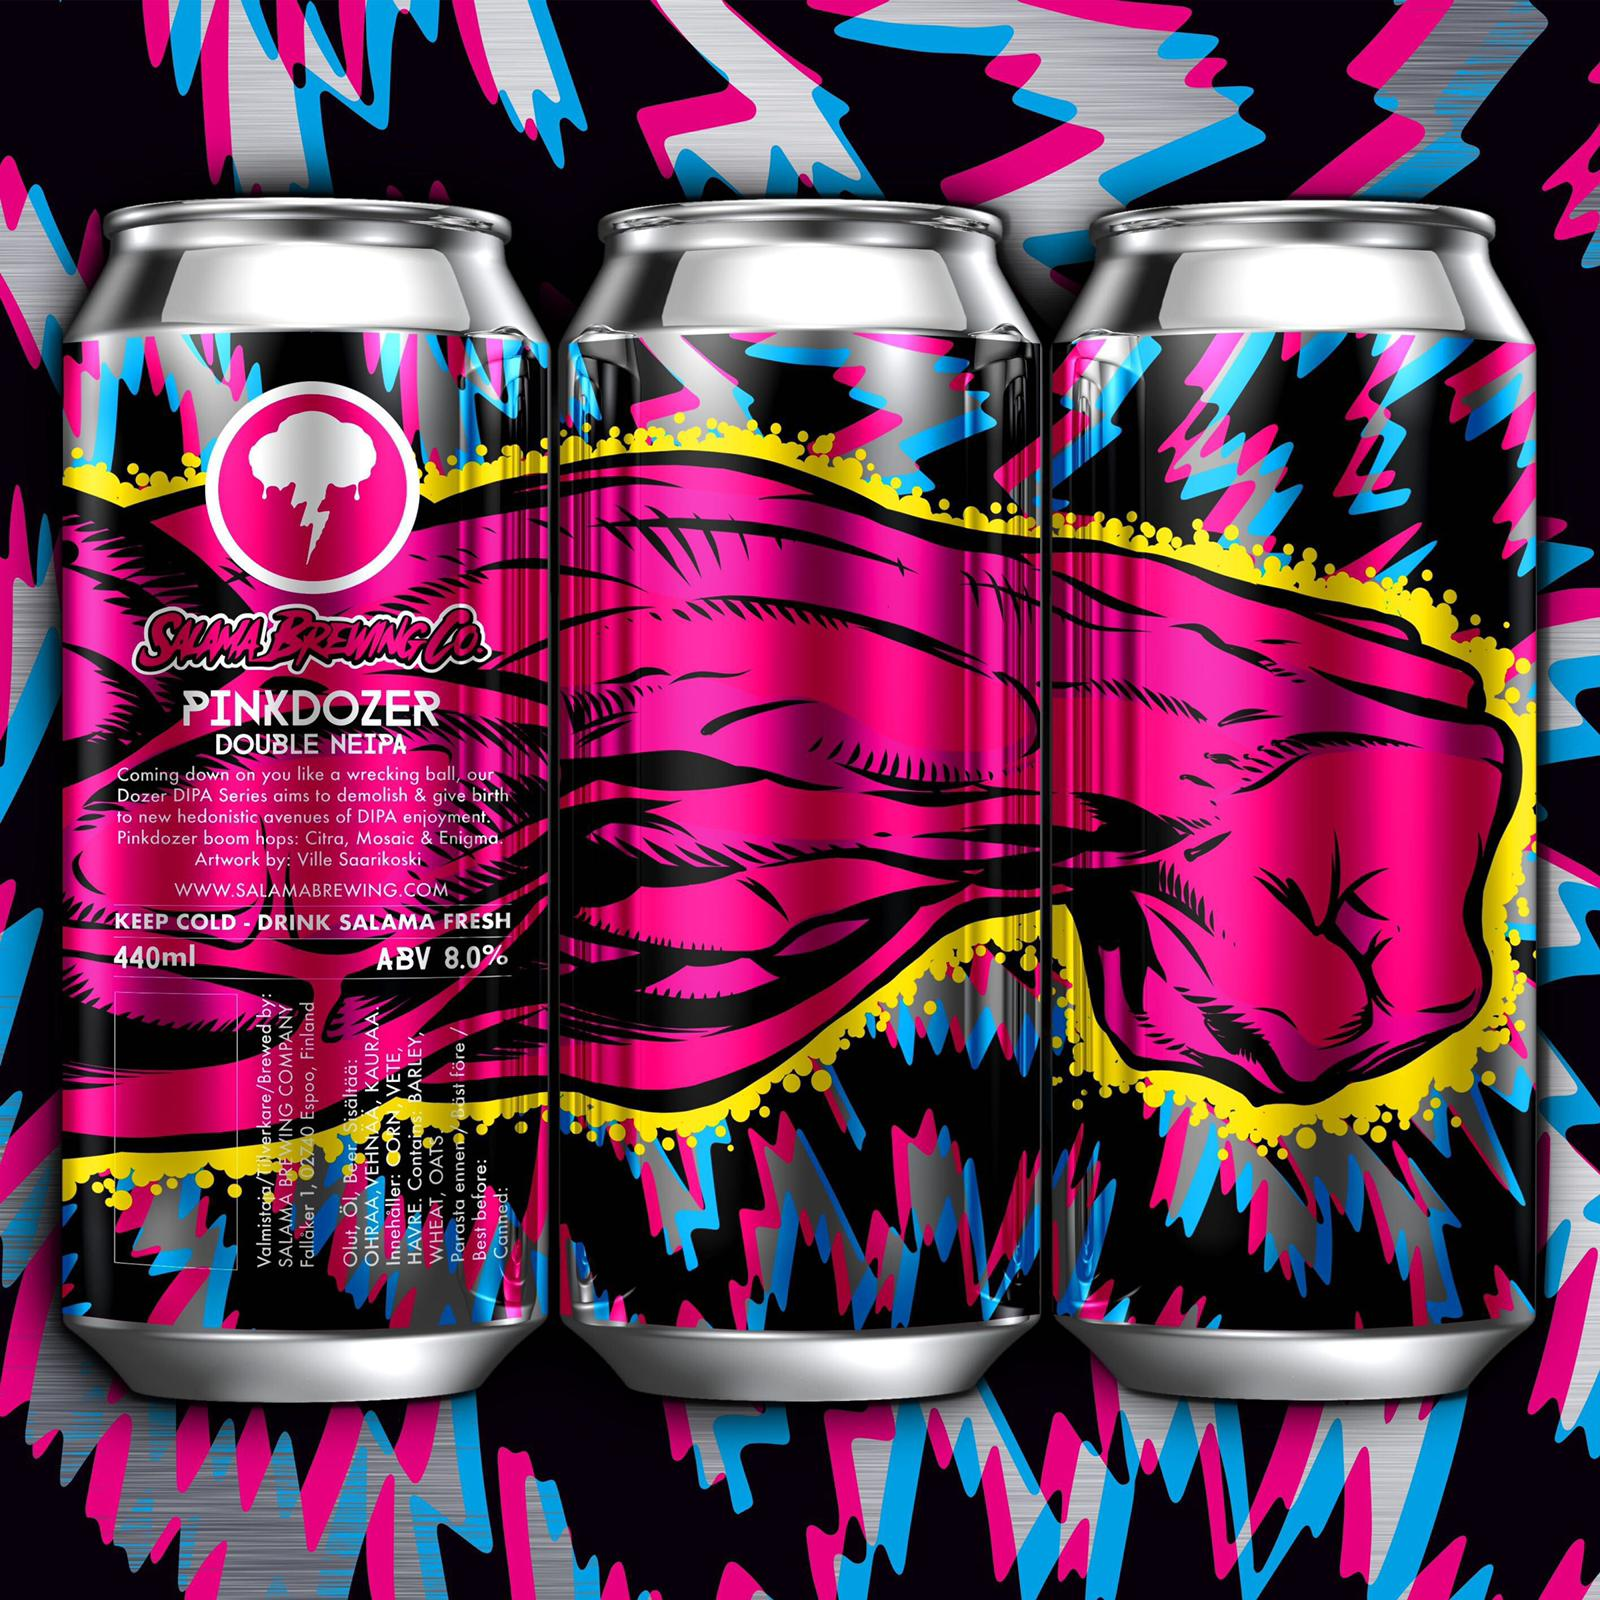 Pinkdozer Double NEIPA 8% 440 can